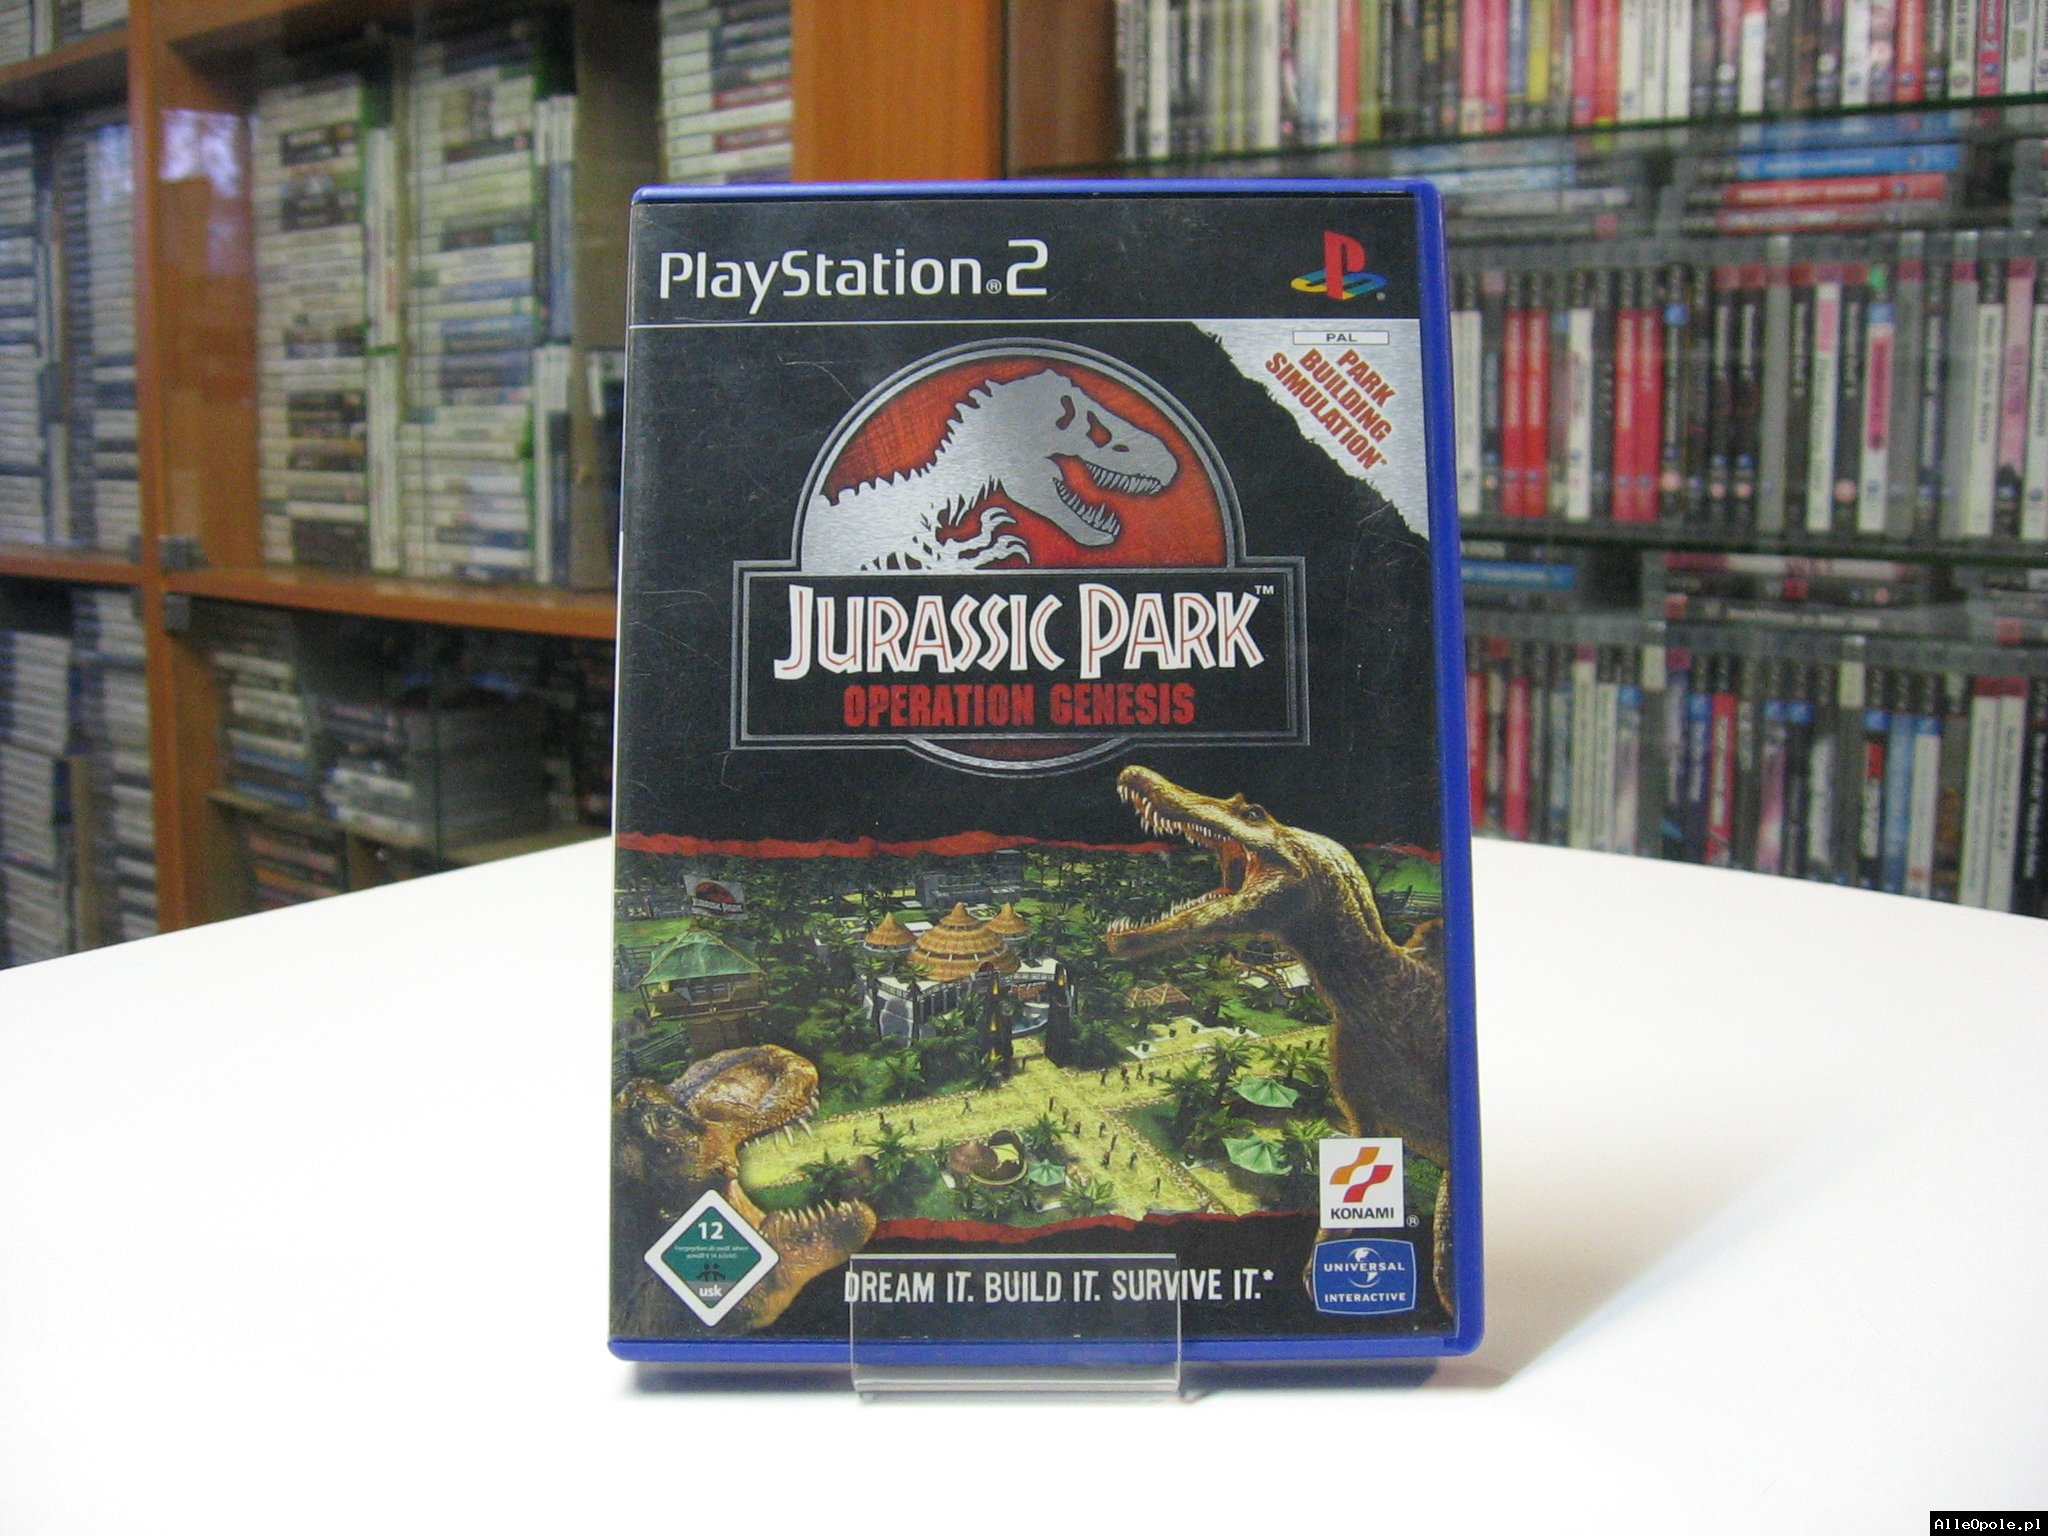 JURASSIC PARK OPERATION GENESIS - GRA Ps2 - Opole 0565